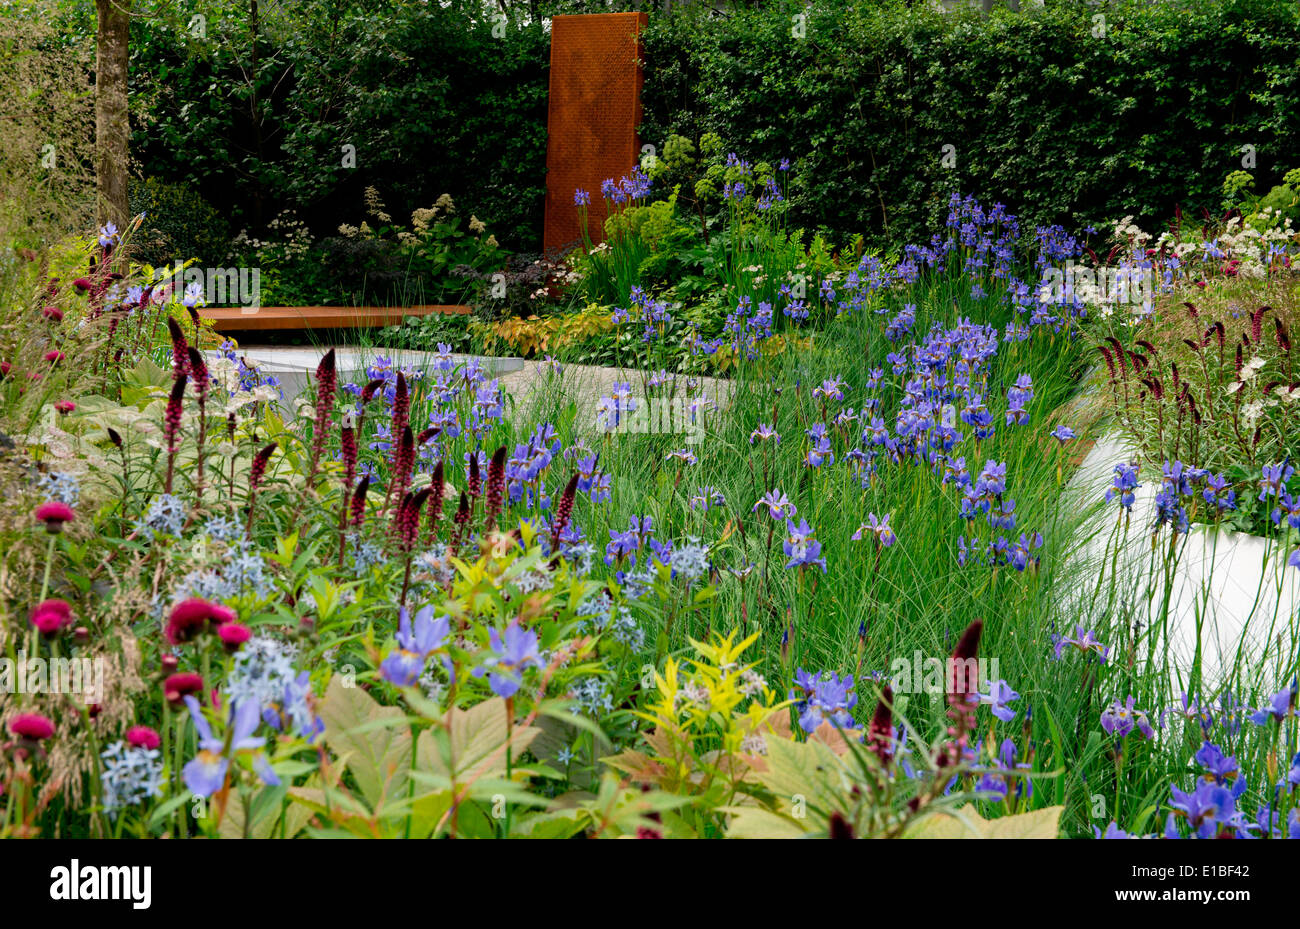 The RBC Waterscape Garden a gold medal winner designed by Hugo Bugg at The Chelsea Flower Show 2014, London, UK - Stock Image